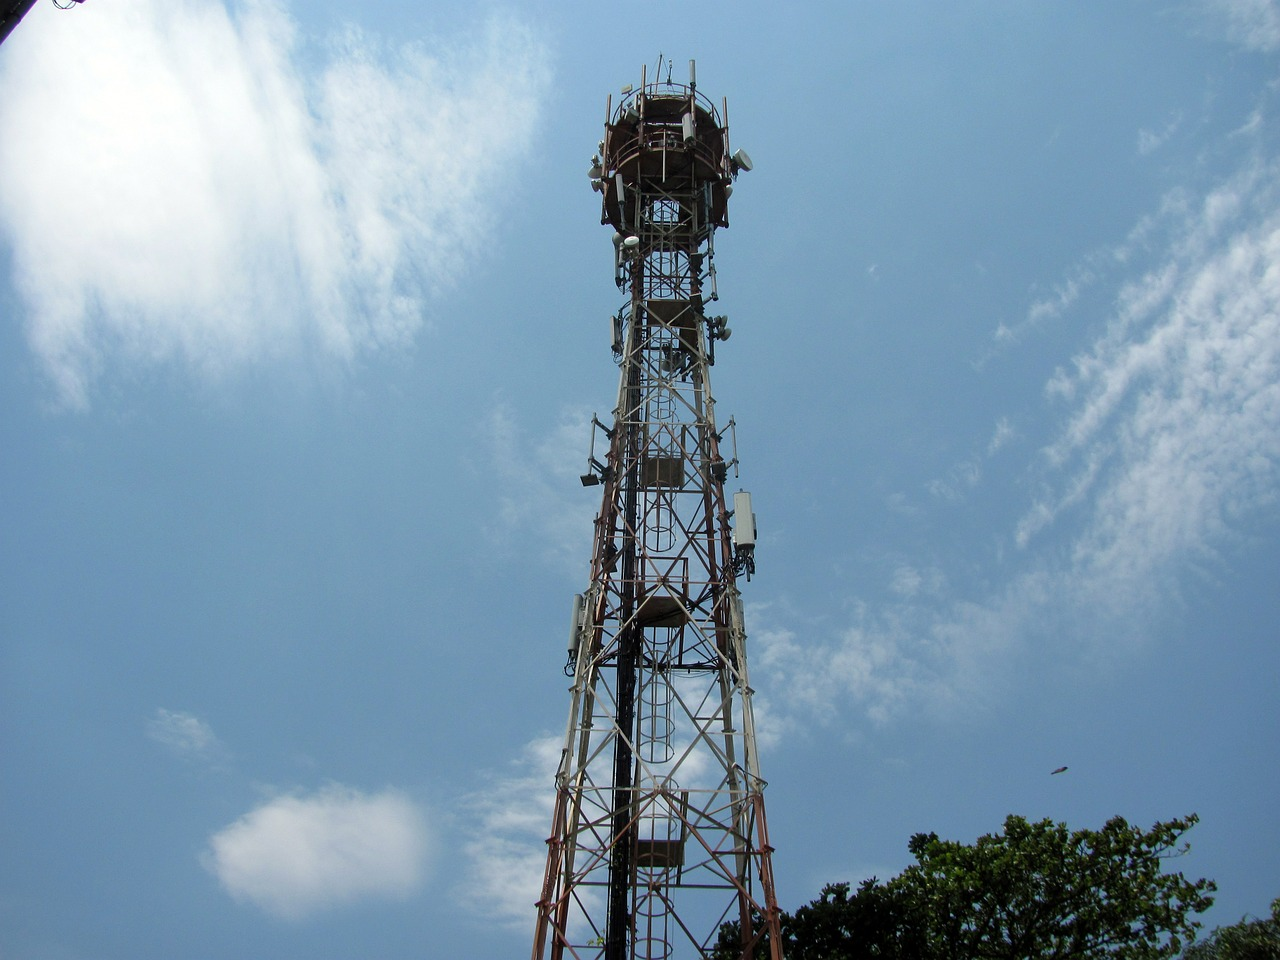 Vodafone And Idea To Sell Towers; Jio and Airtel to Rule the Market?